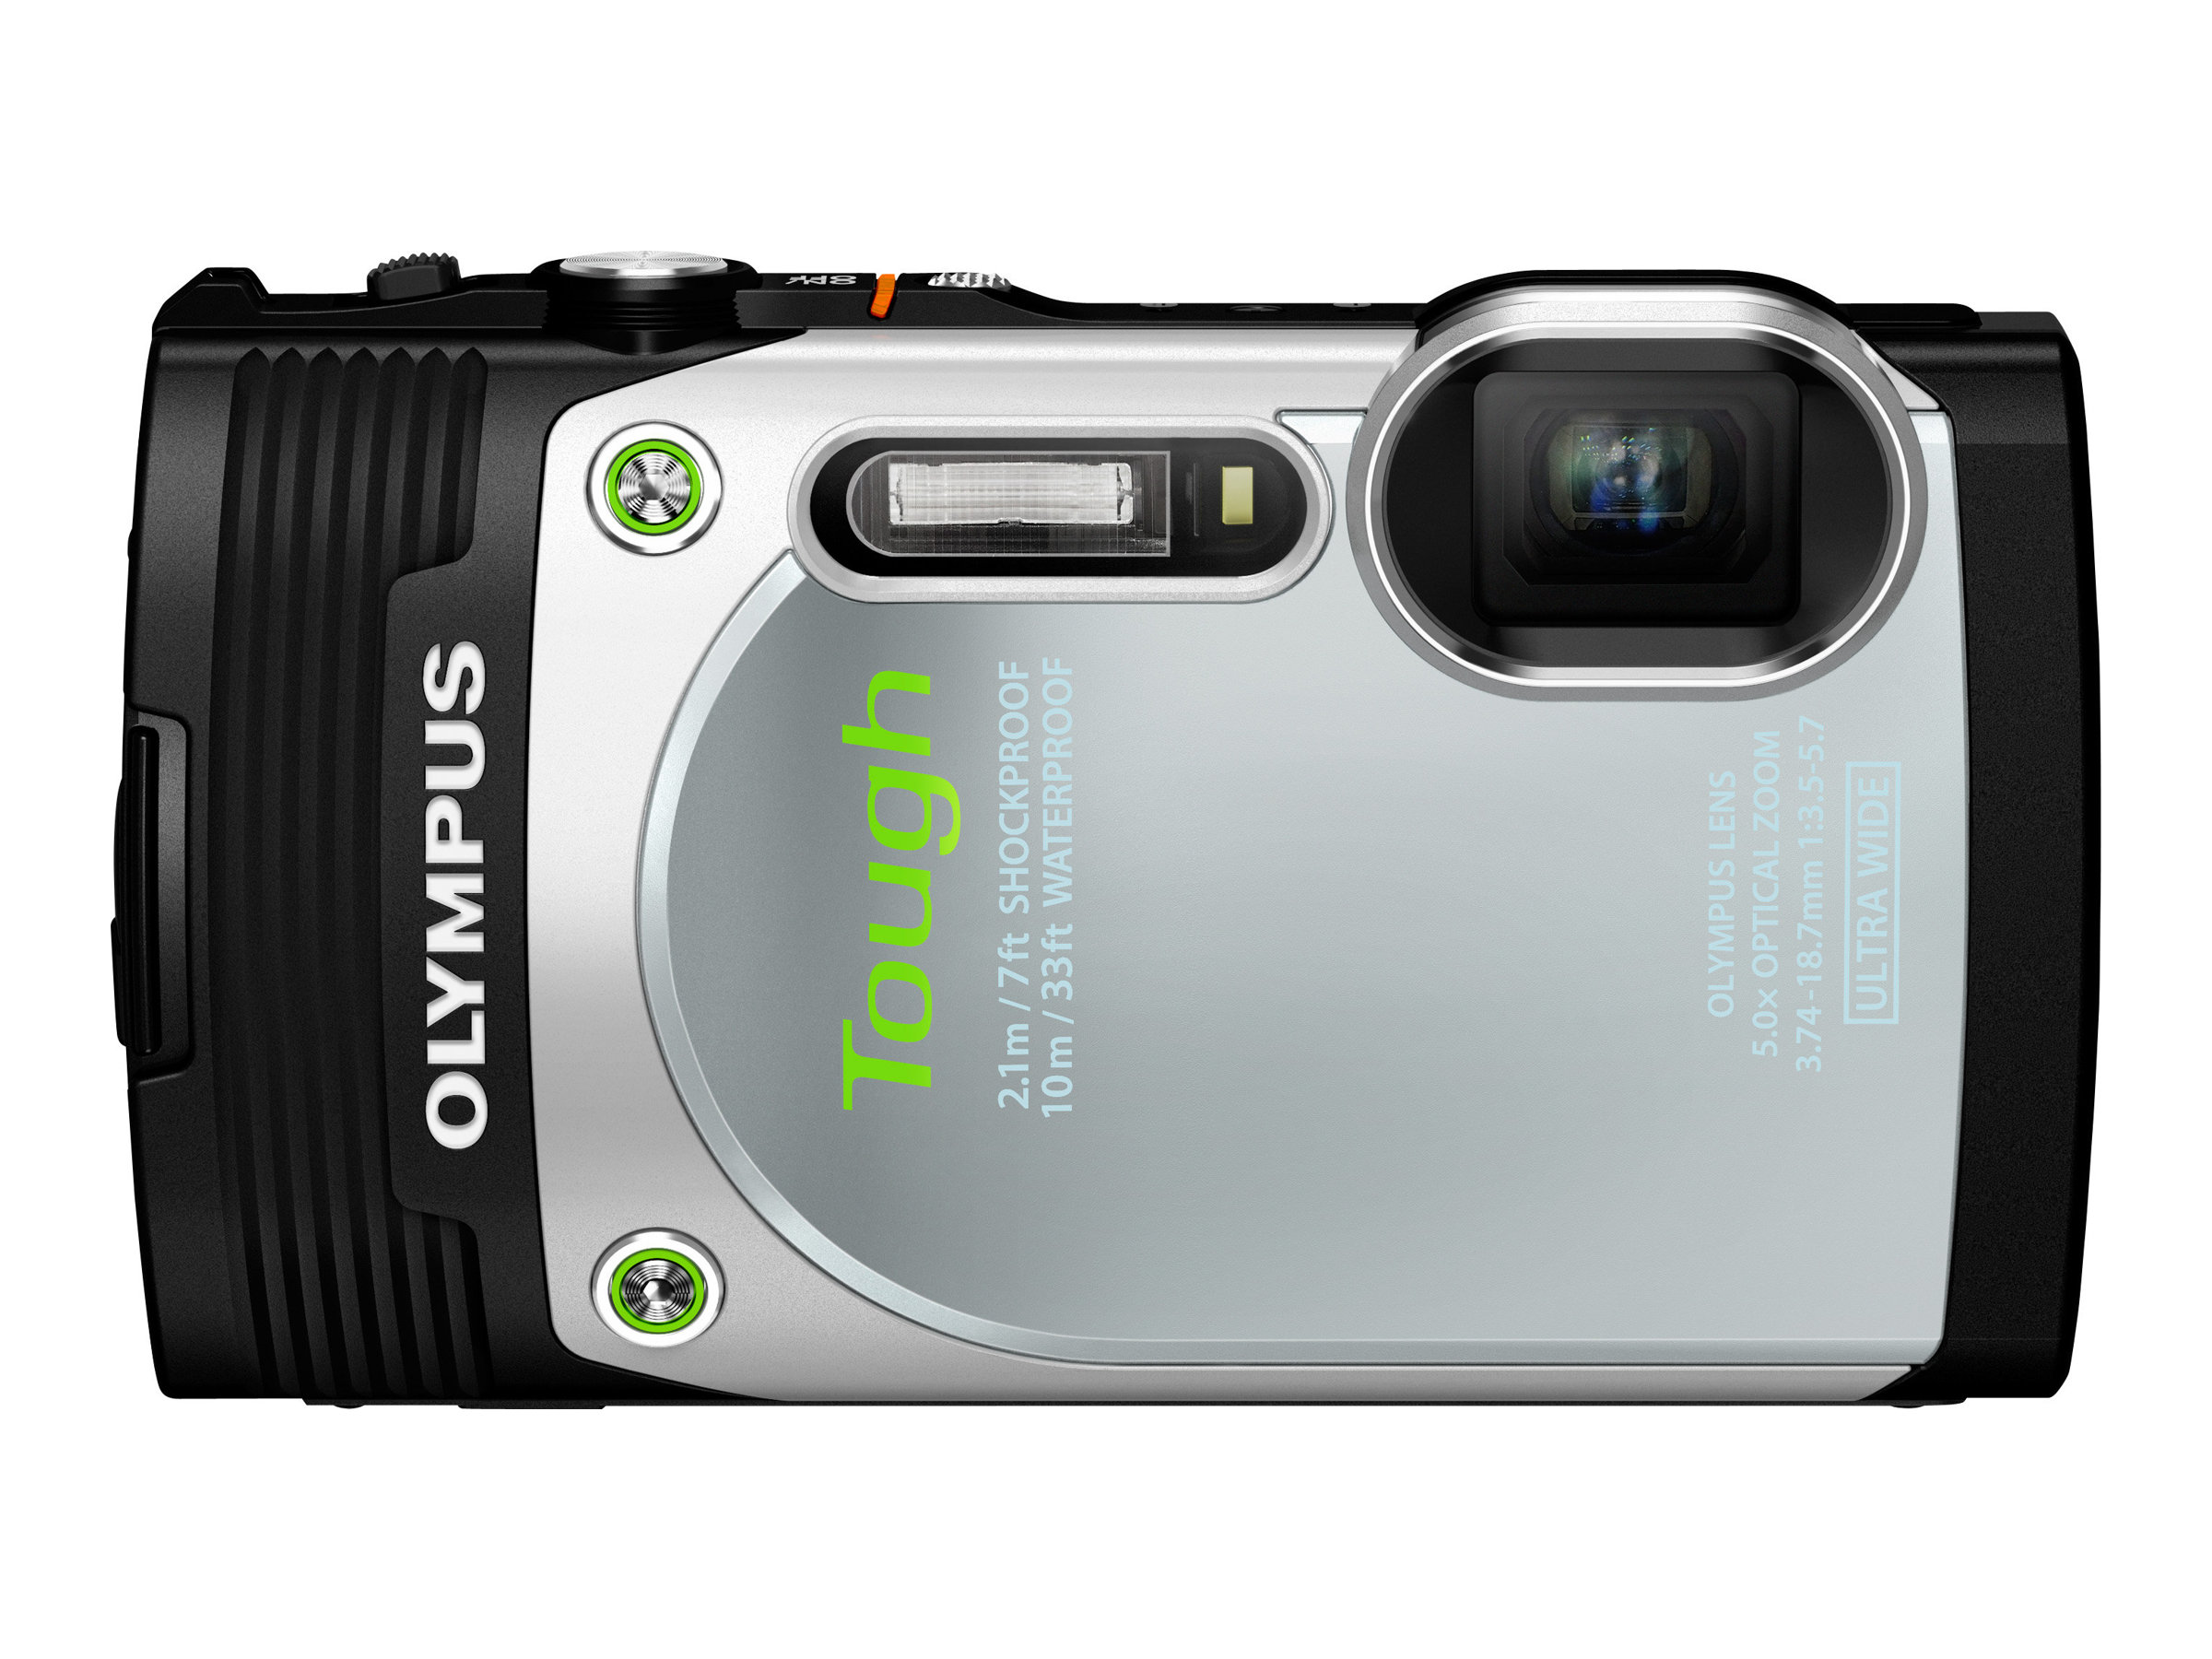 Olympus Stylus Tough TG-850 Digital Camera, Silver, V104150SU000, 16793130, Cameras - Digital - Point & Shoot